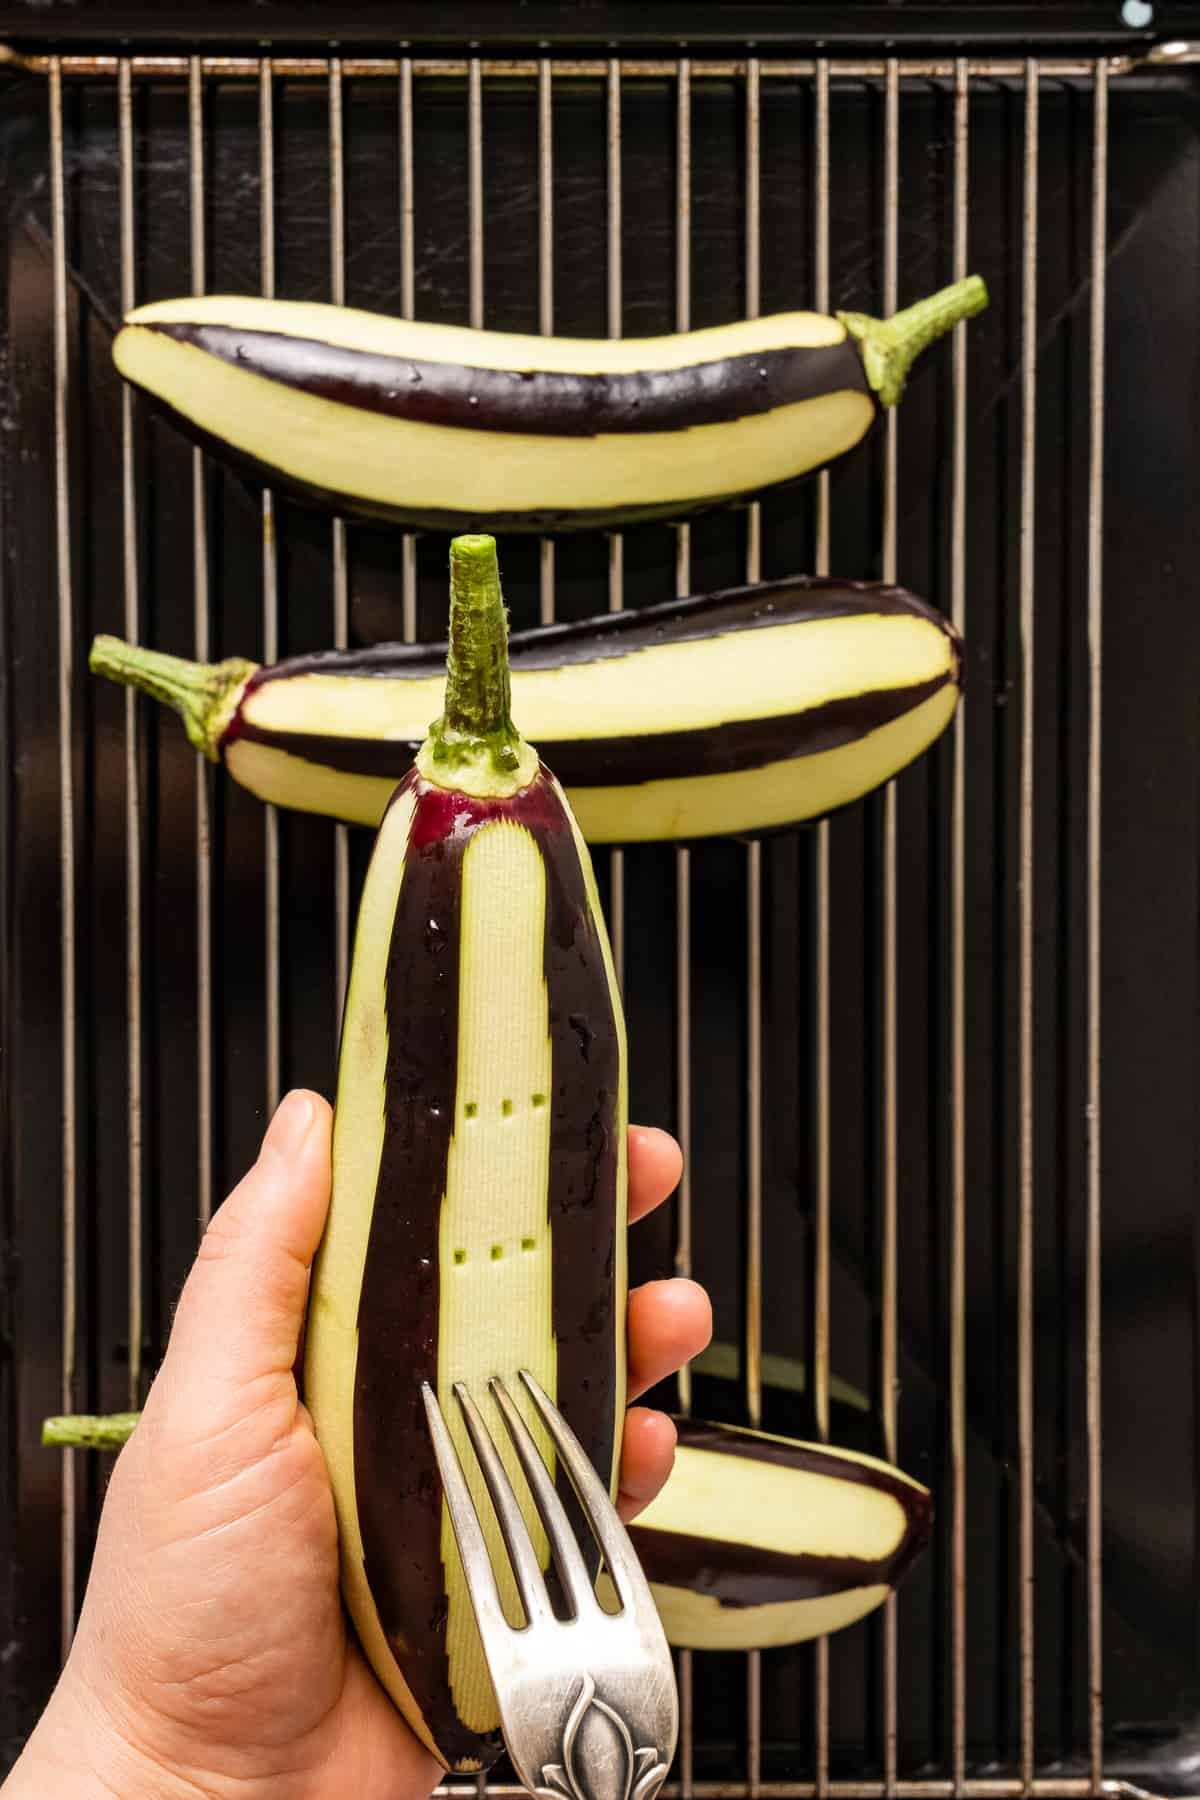 Hands pricking an eggplant with a fork and more eggplants on a grilling rack.